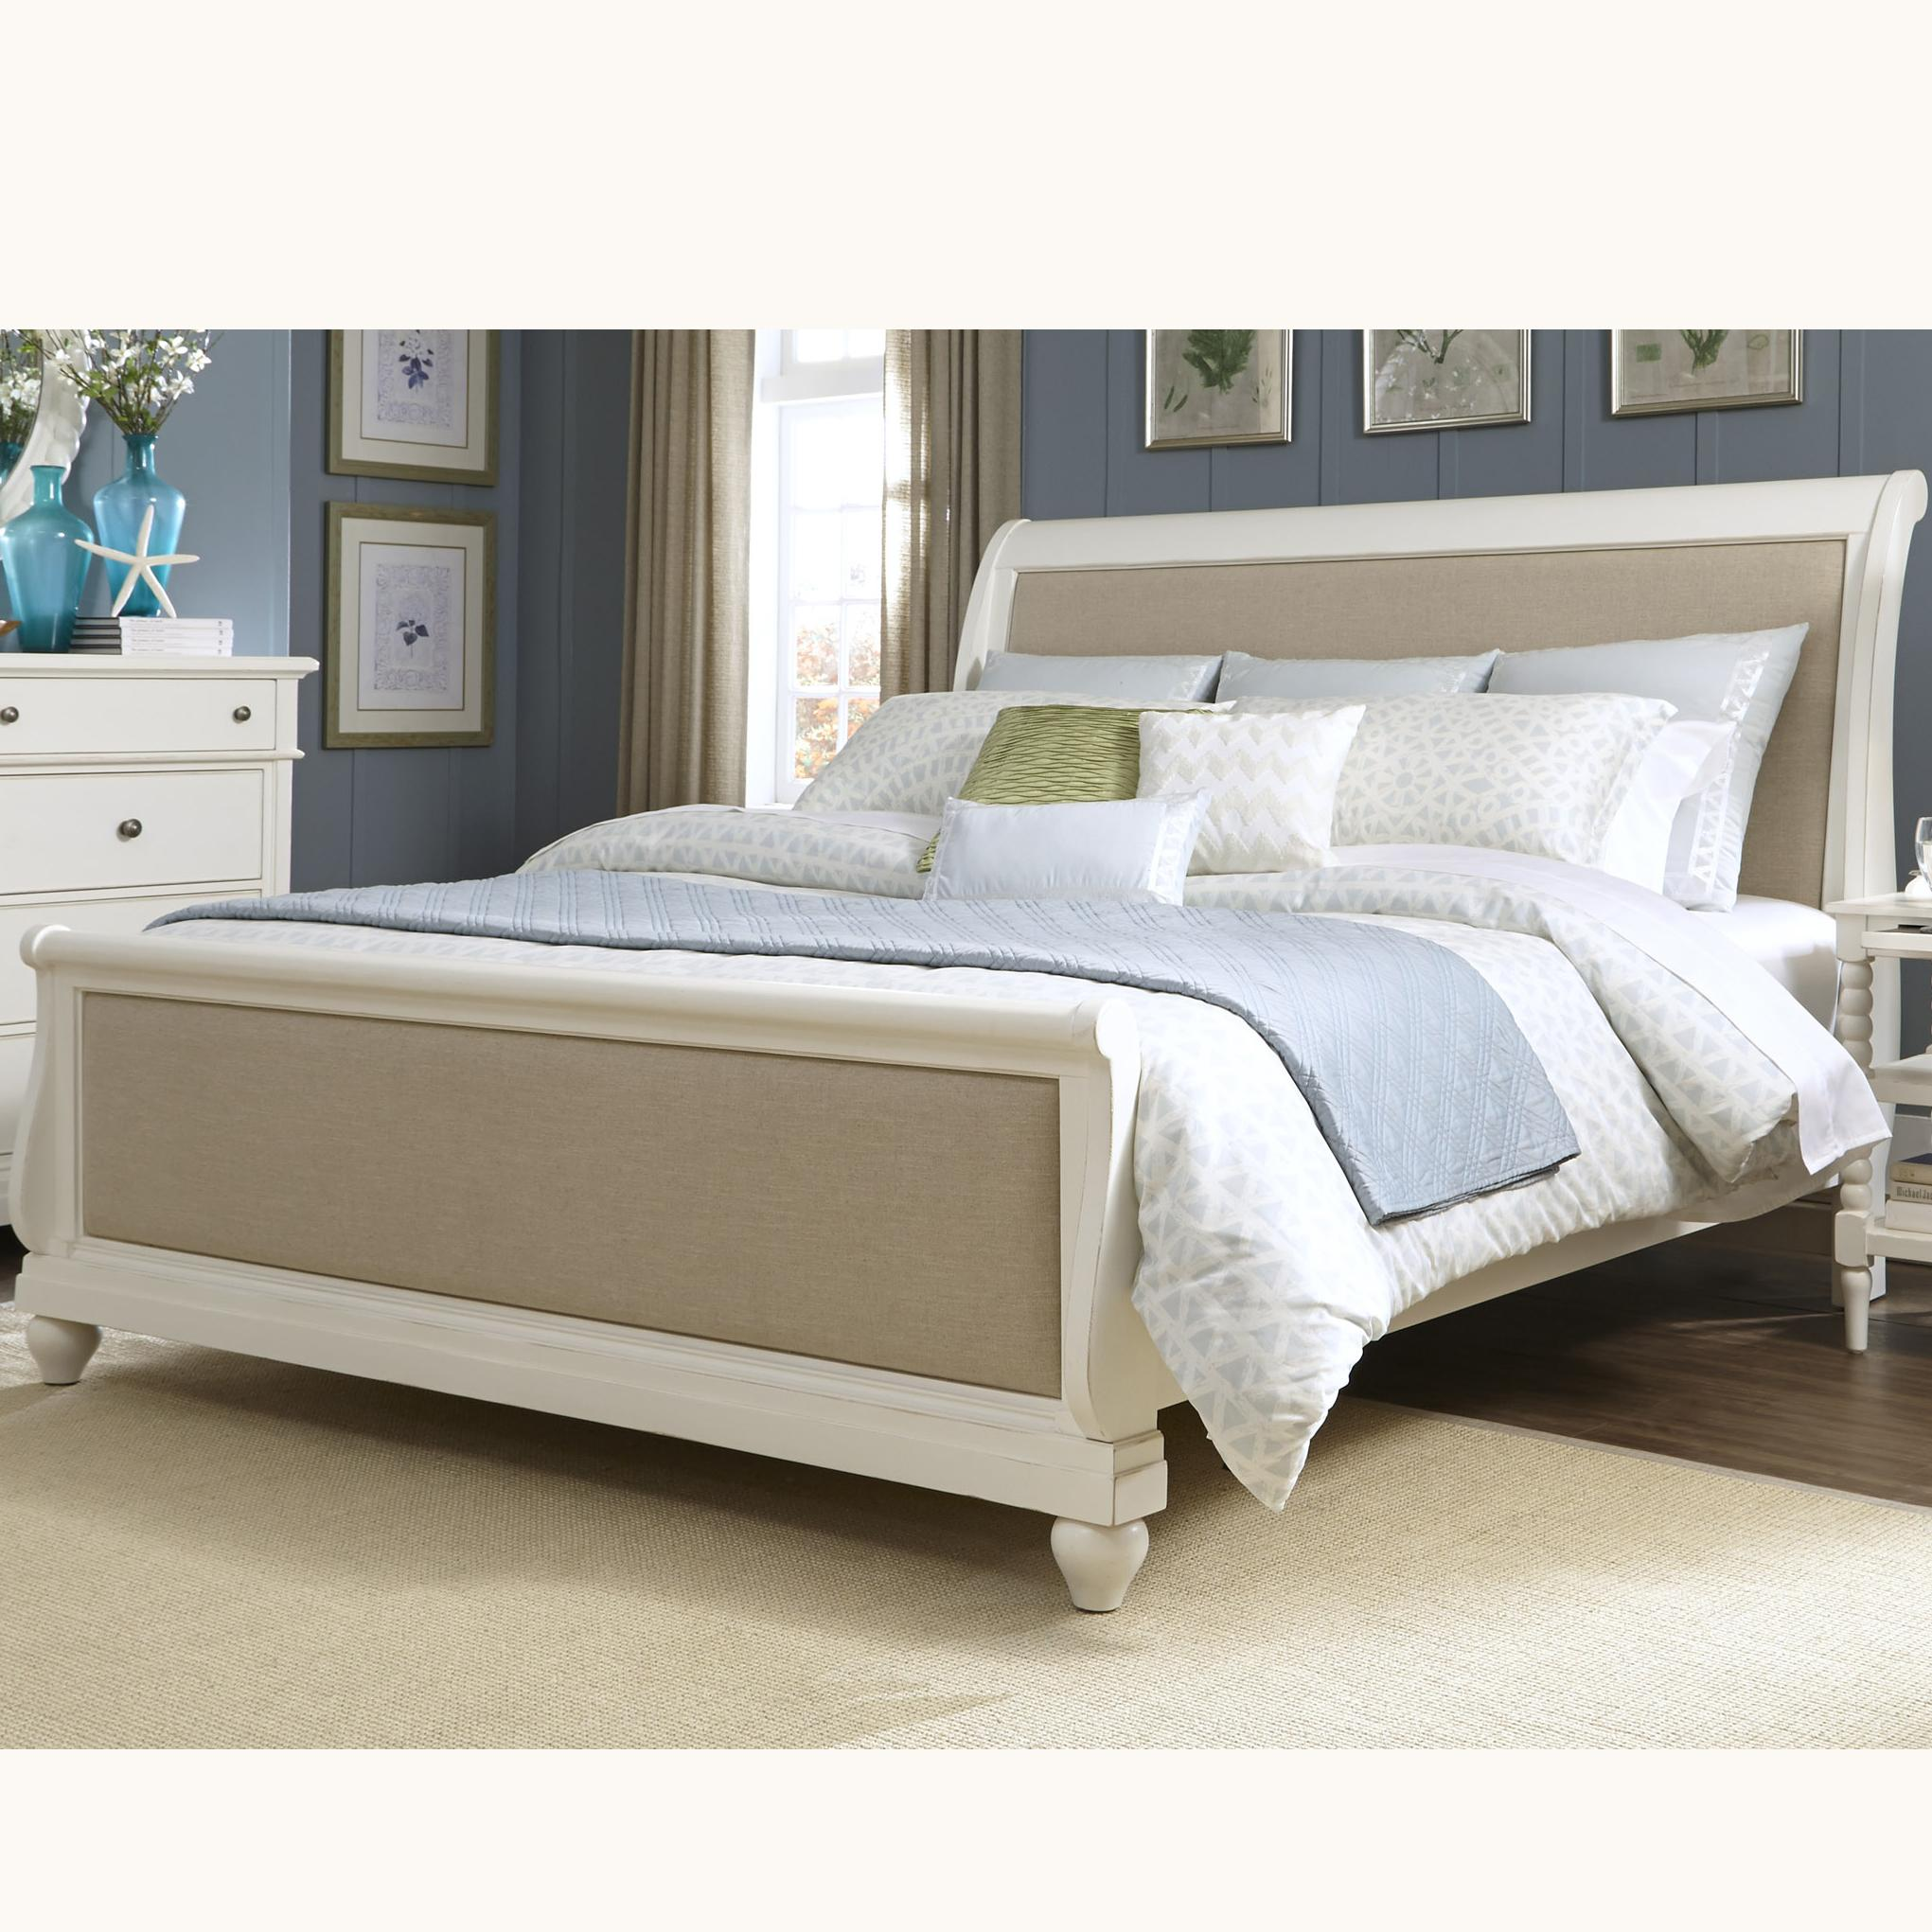 Liberty Furniture Harbor View King Sleigh Bed - Item Number: 631-BR-KSL